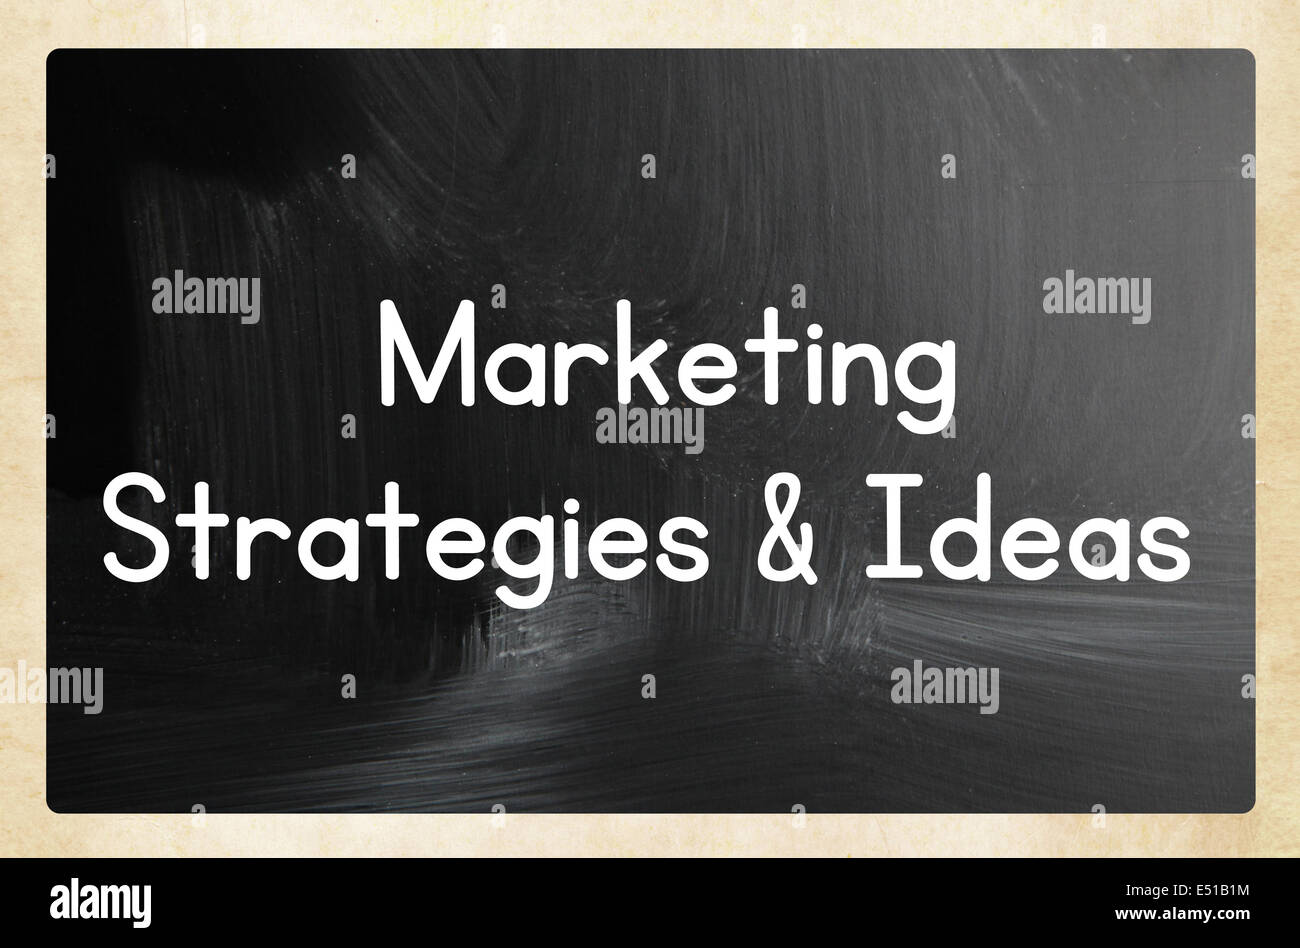 marketing strategies  ideas - Stock Image